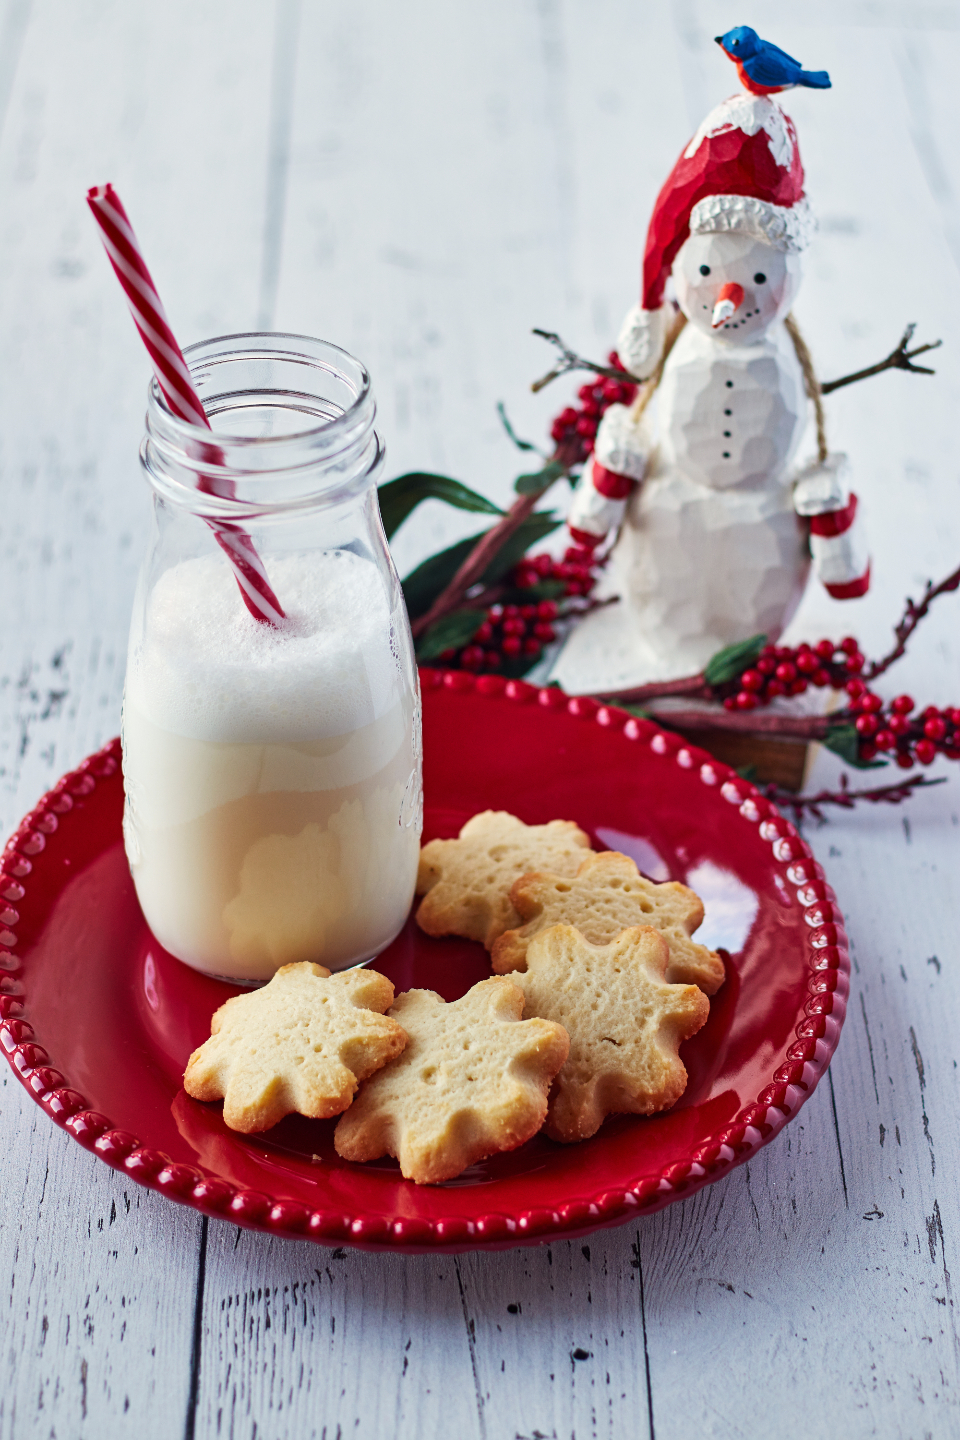 milk cookies christmas festive holiday shortbread snack sweets food rustic wood glass jar straw plate cookie ornaments snowman